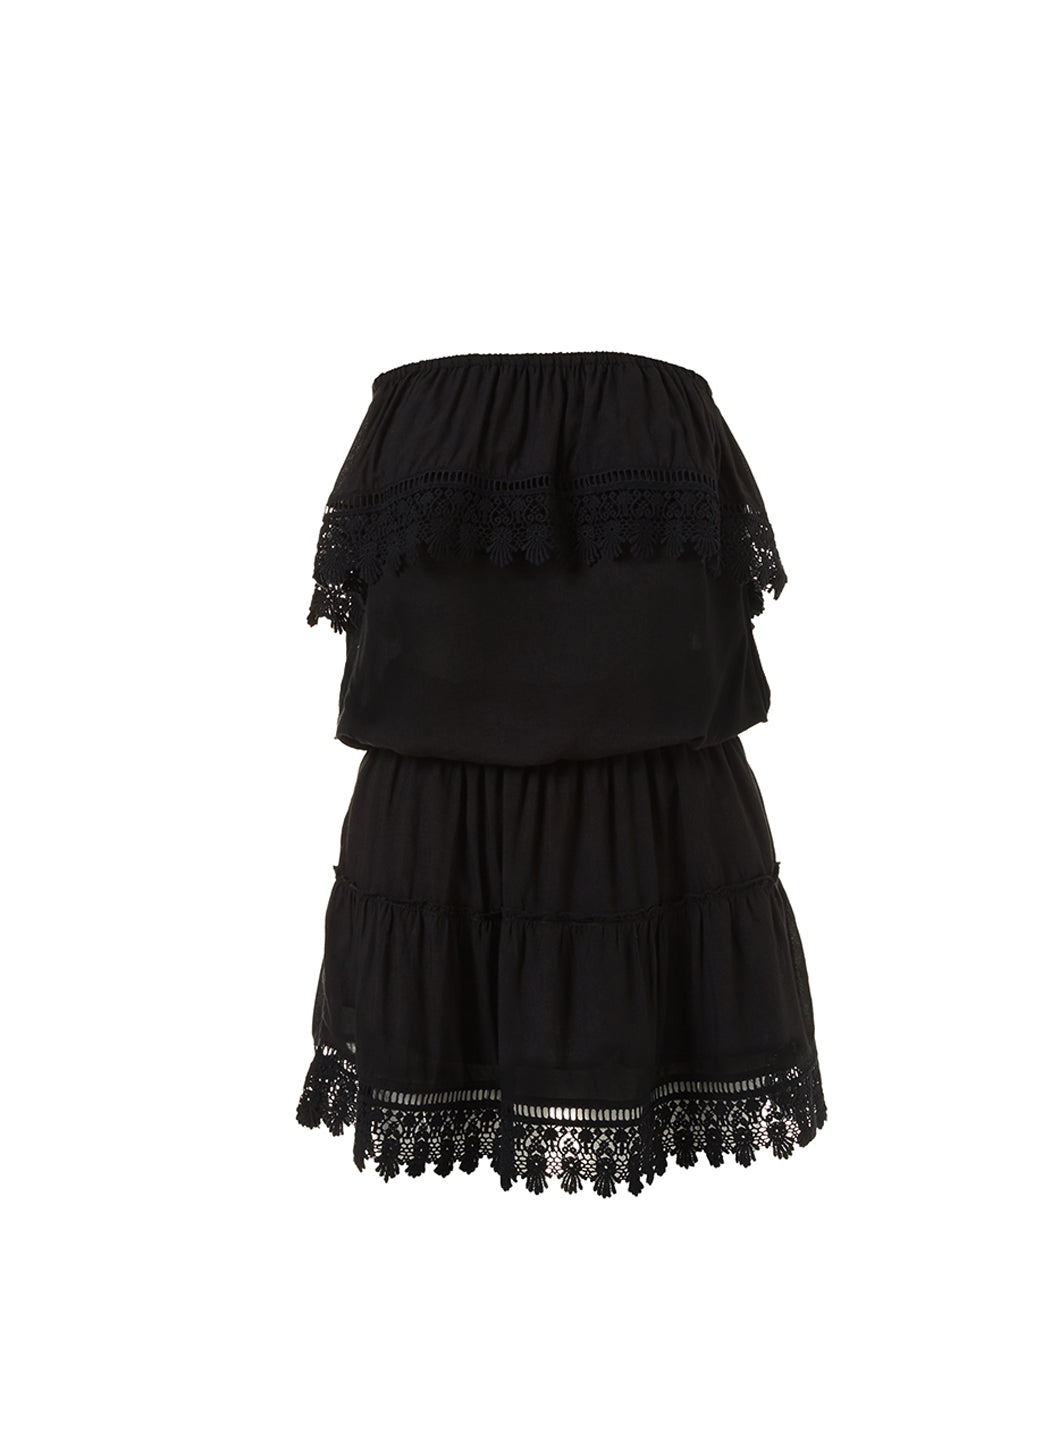 Joy Black Bandeau Embroidered Frill Short Dress